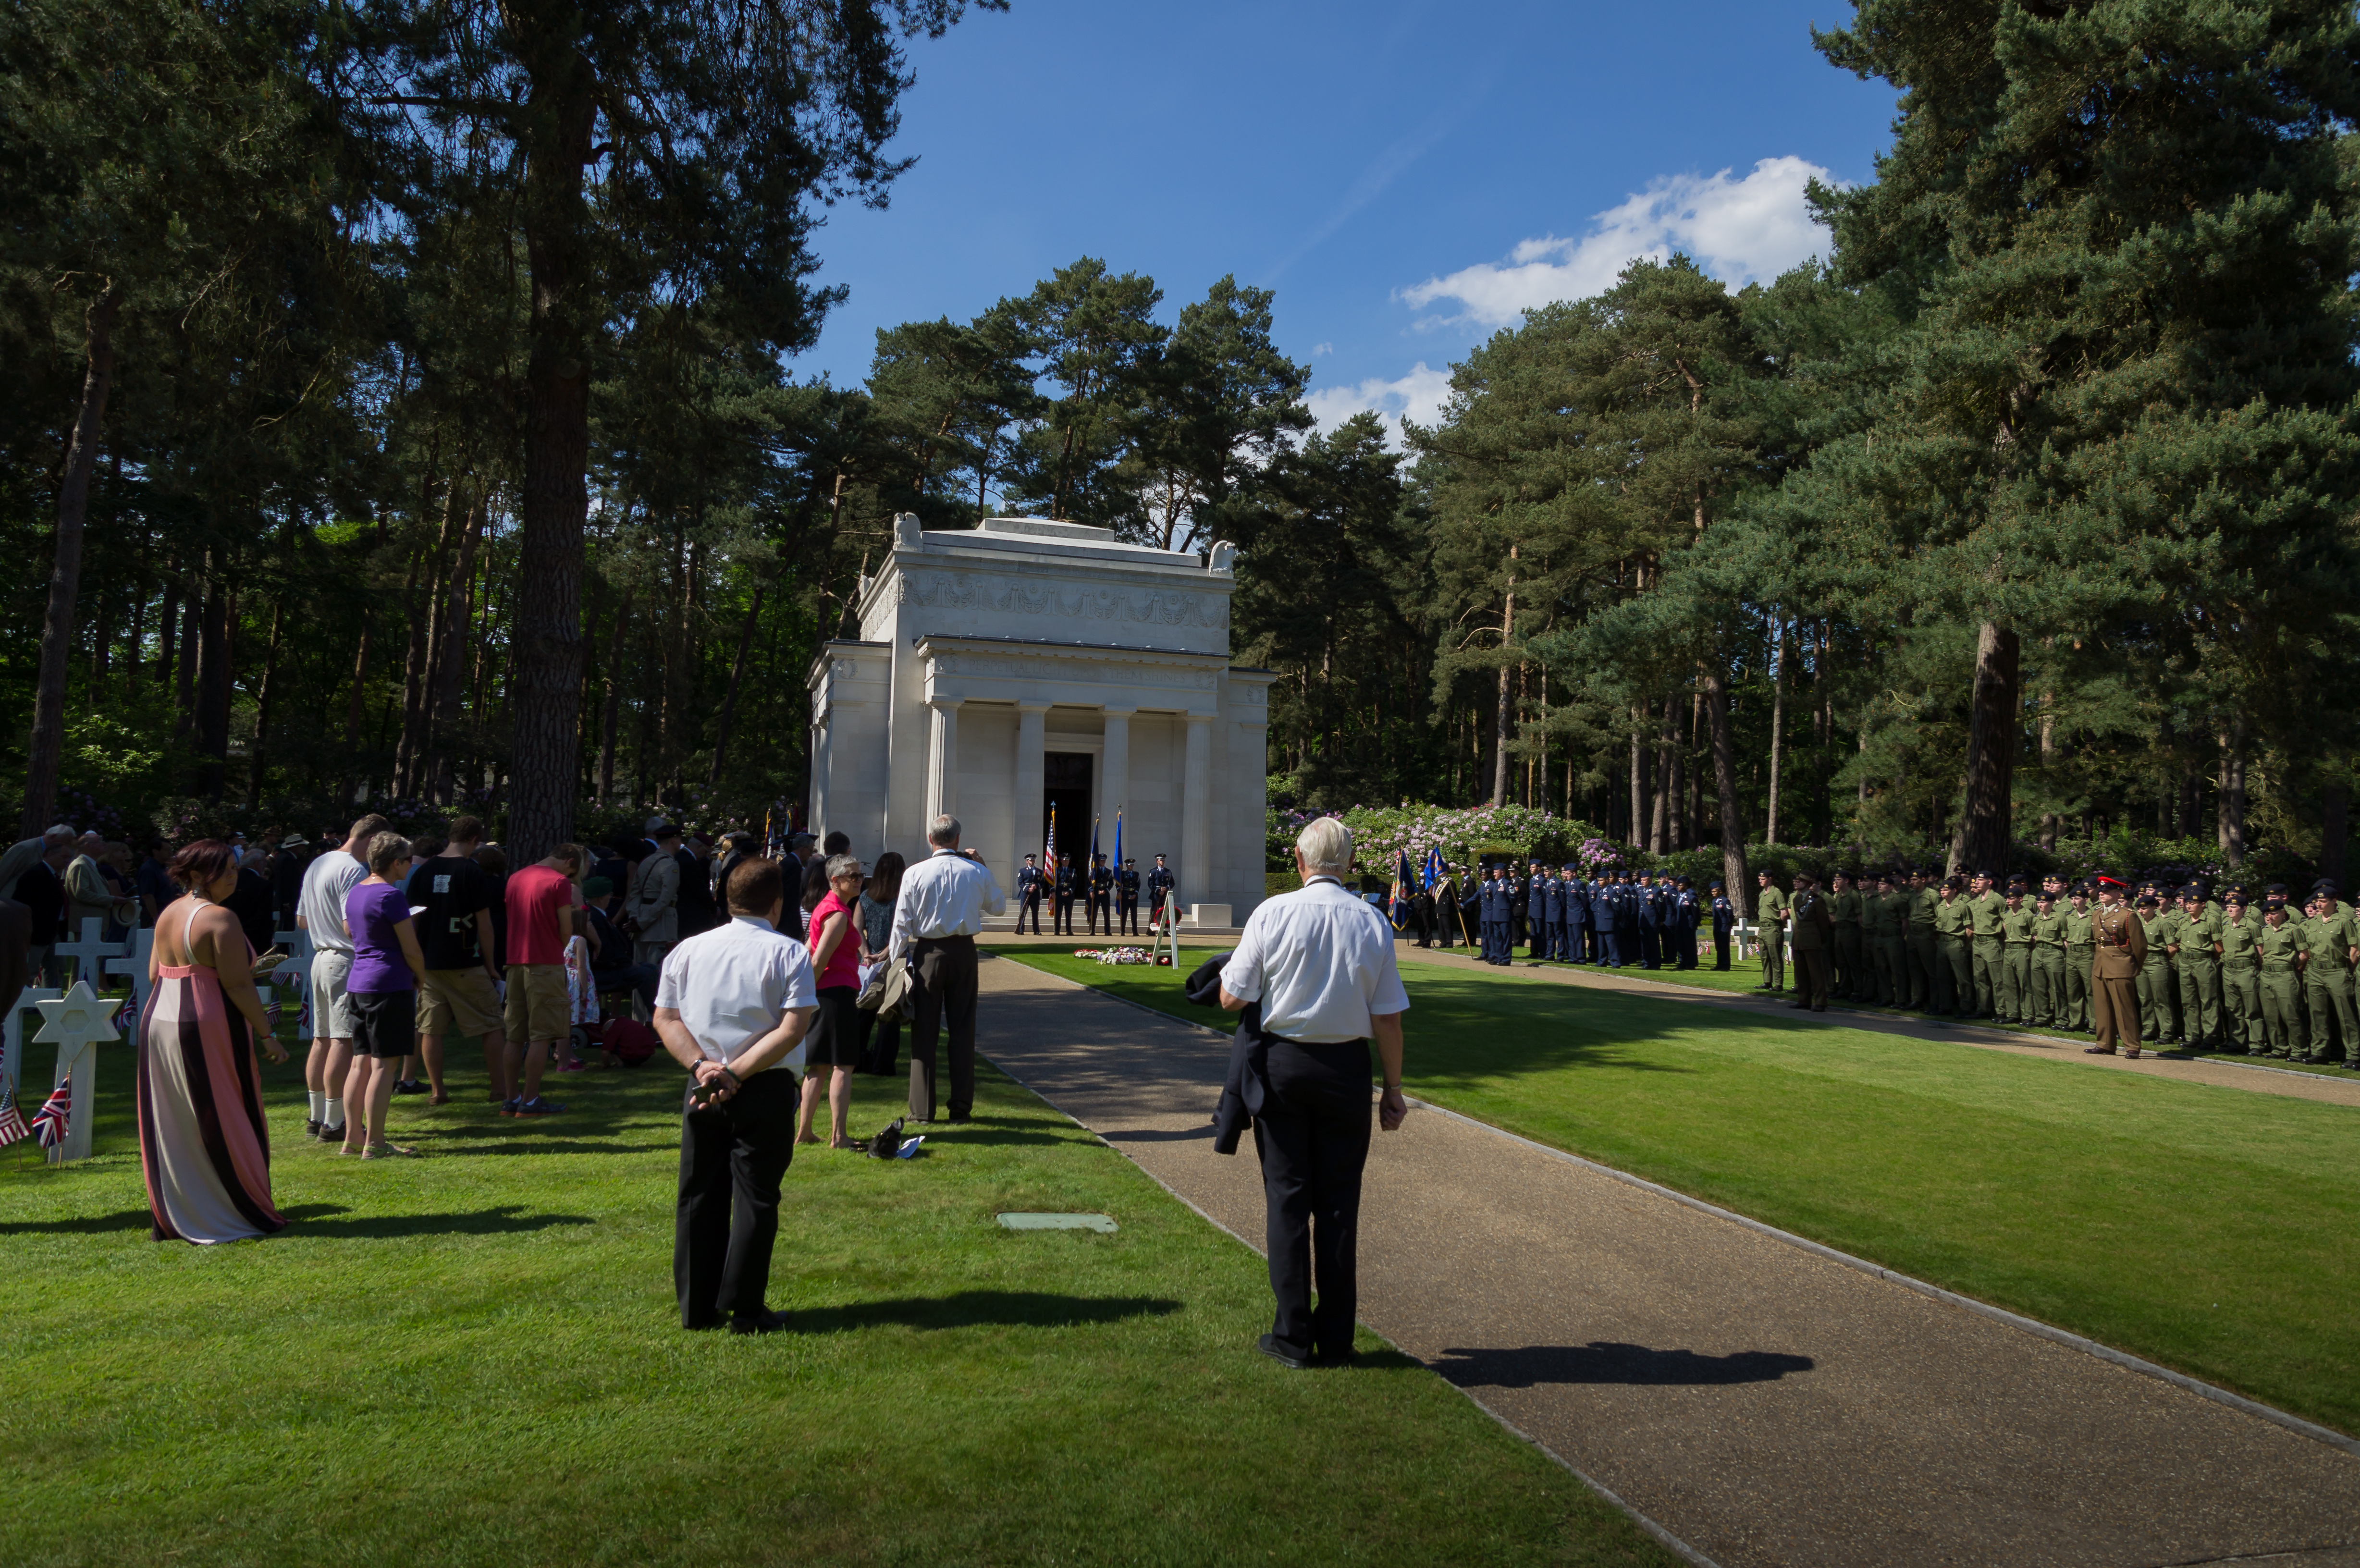 Memorial Day 2012 activities at Brookwood American Cemetery in England.